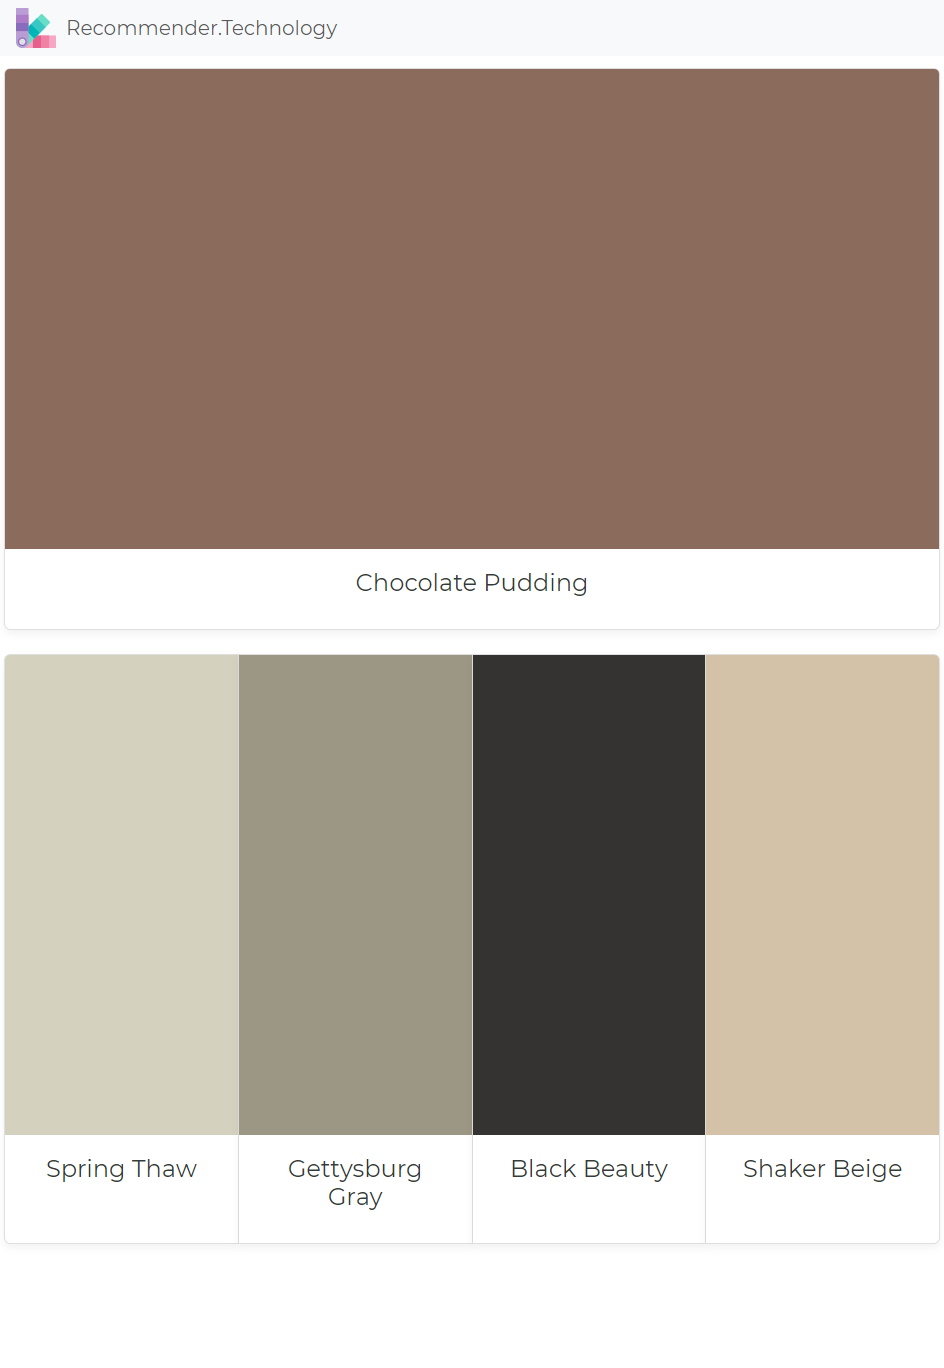 Chocolate Pudding Spring Thaw Gettysburg Gray Black Beauty